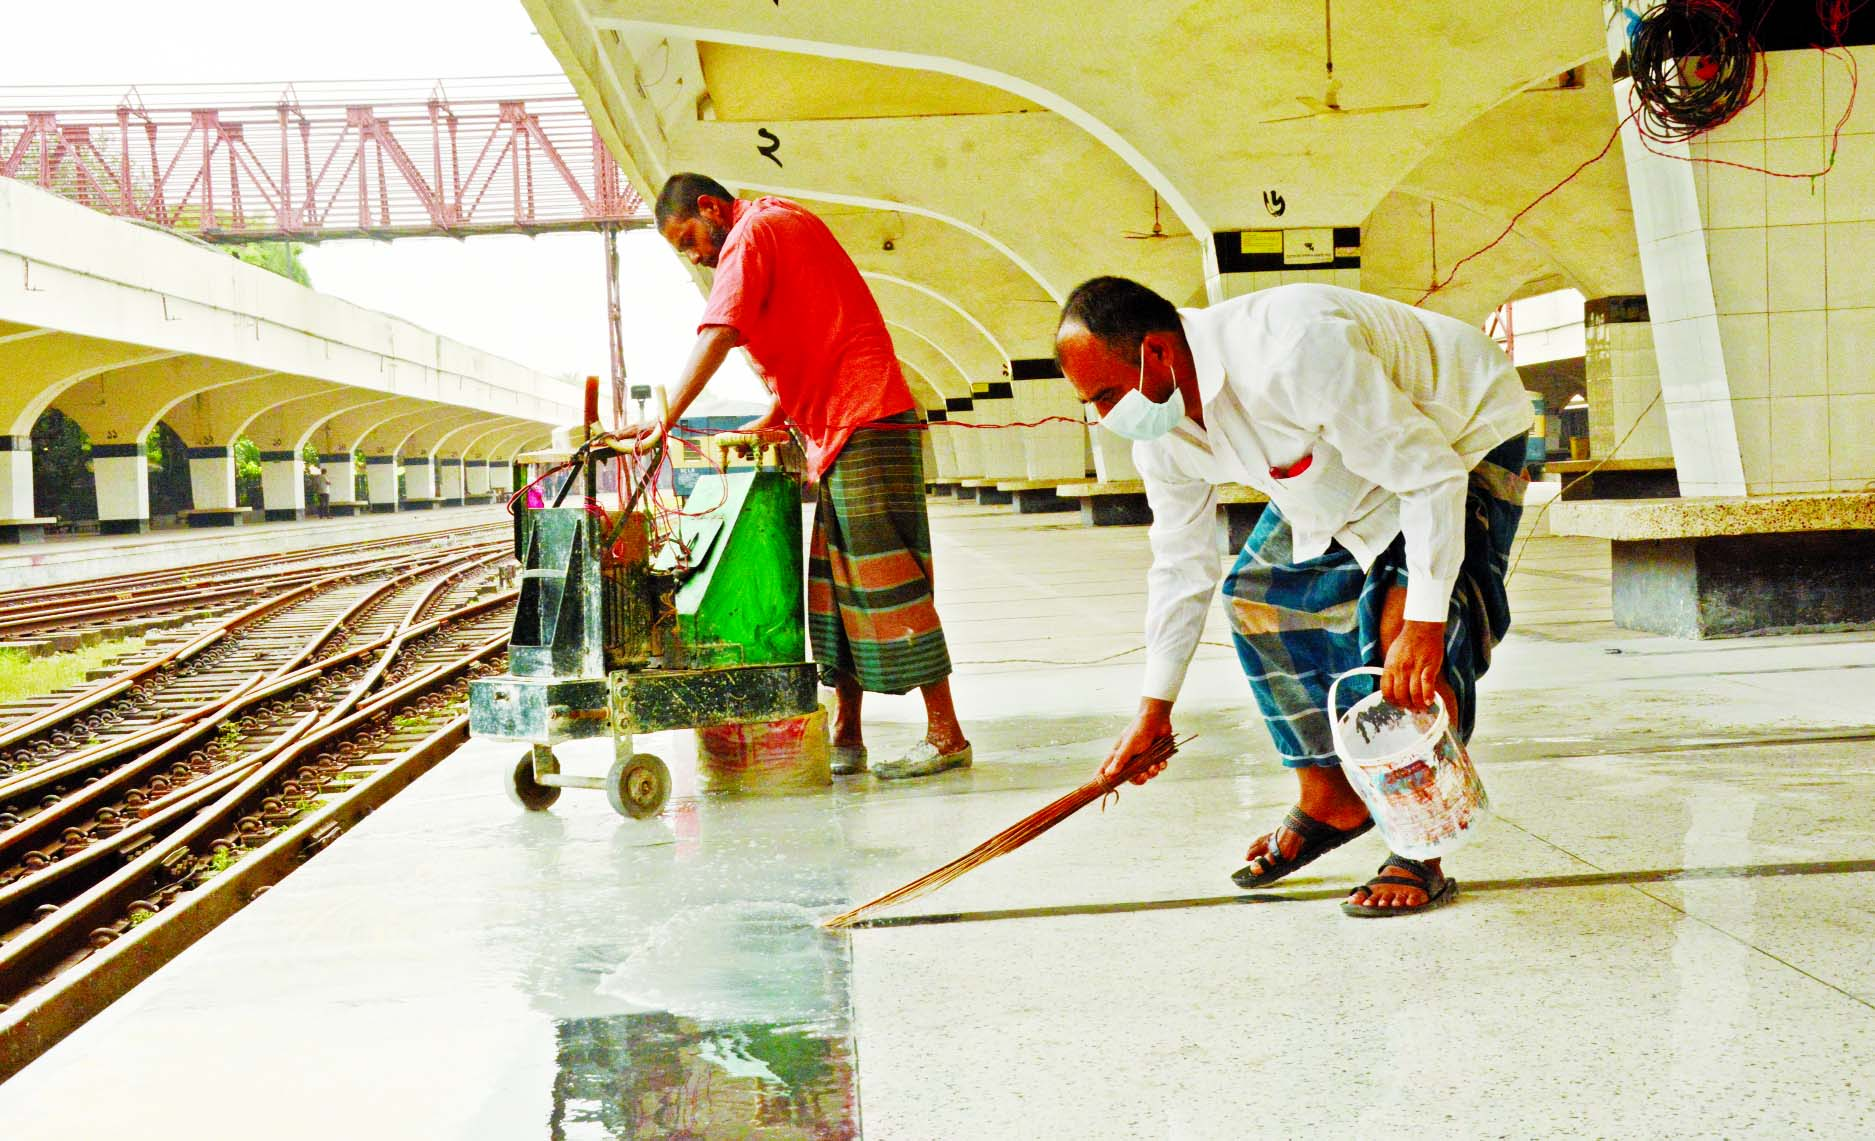 Workers cleaning the Kamalapur Railway Station on Friday morning as the authorities decided to resume the operation of the intercity trains on a limited scale from May 31 which stopped since March 24 to fight the coronavirus outbreak.